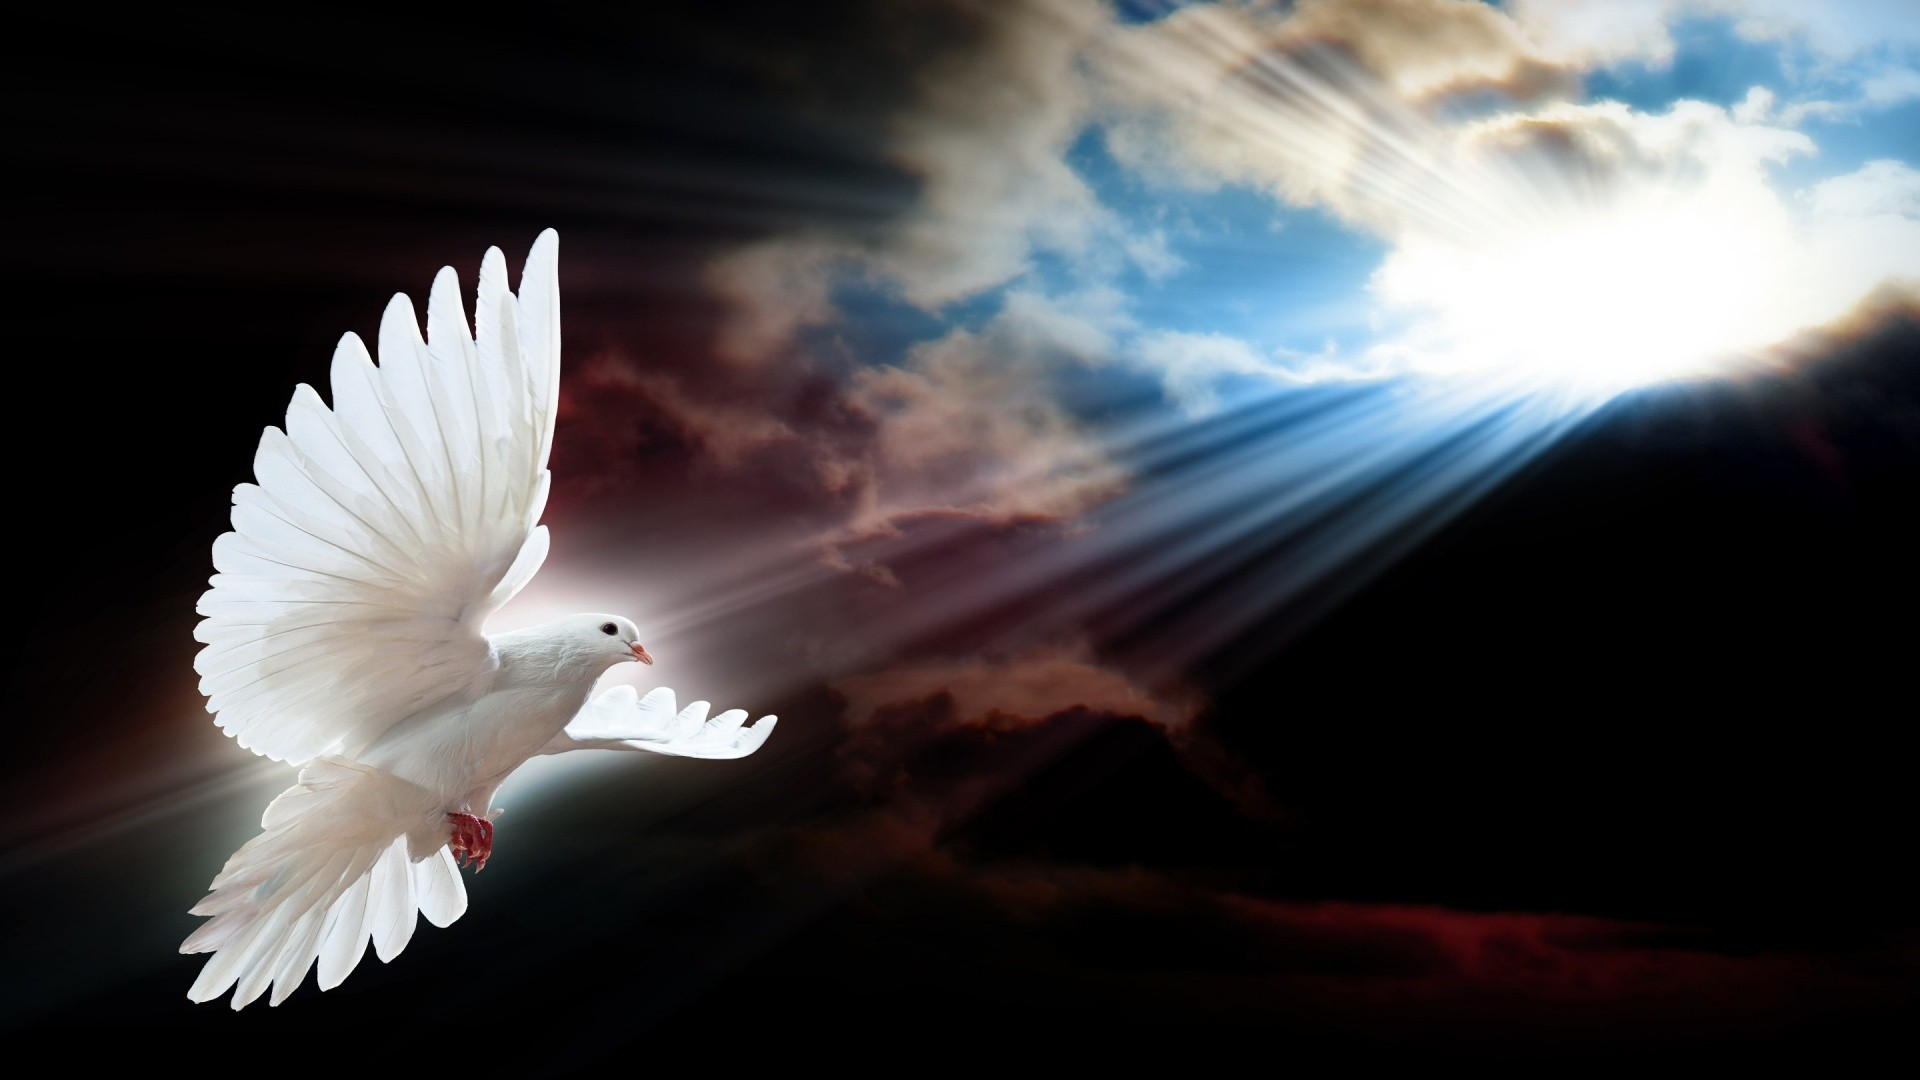 Heaven clipart hd wallpaper Tag Pink Doves 8 Peace